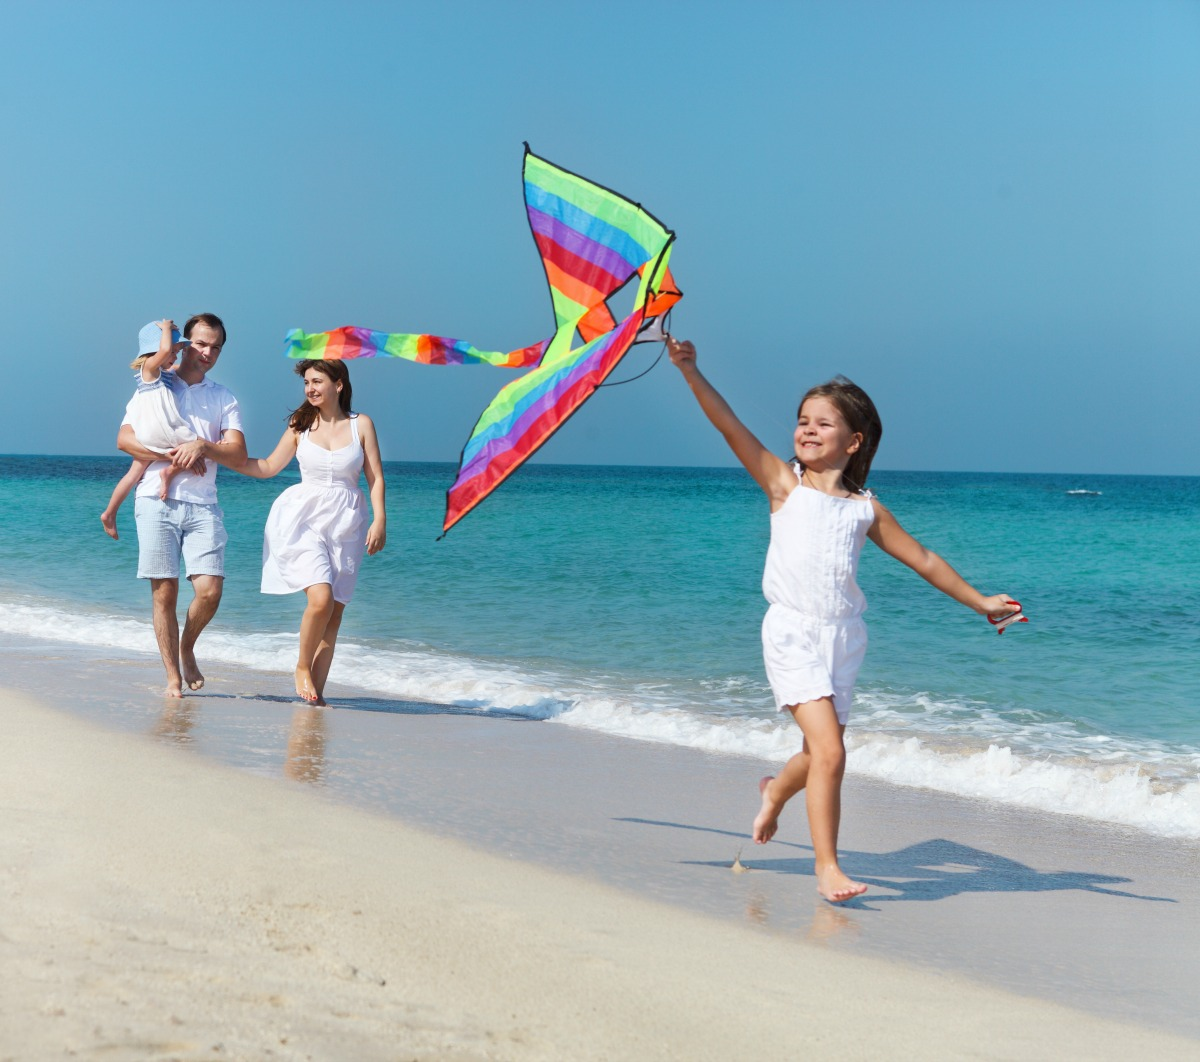 Flying kites is fun for the whole family